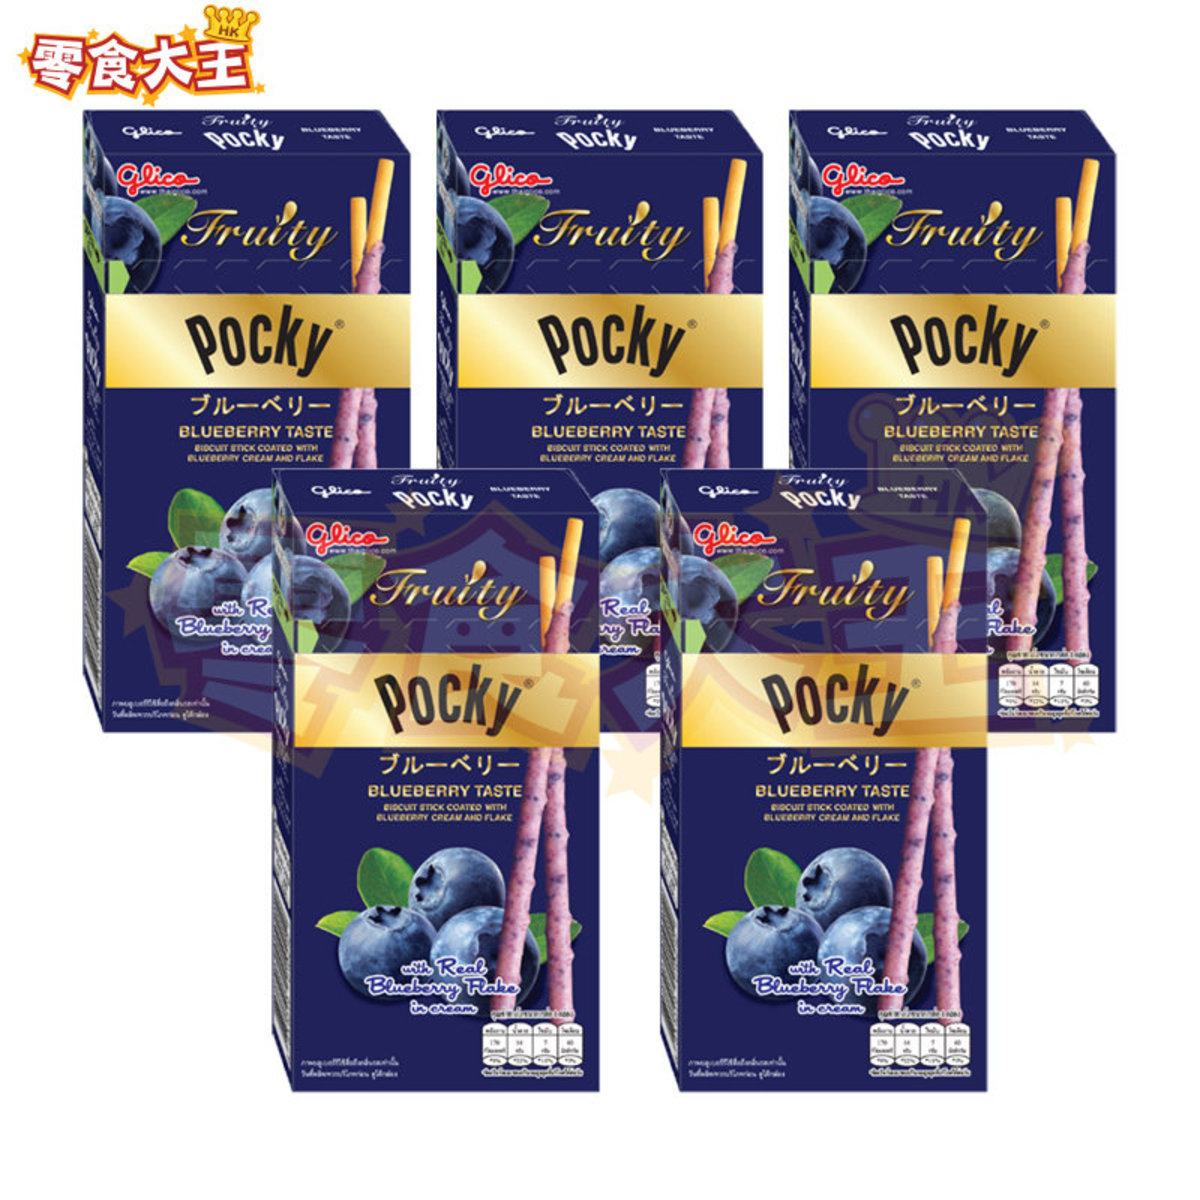 Pocky Fruity Blueberry Taste Biscuit Stick 35g x 5 boxes (8851019010212_5)